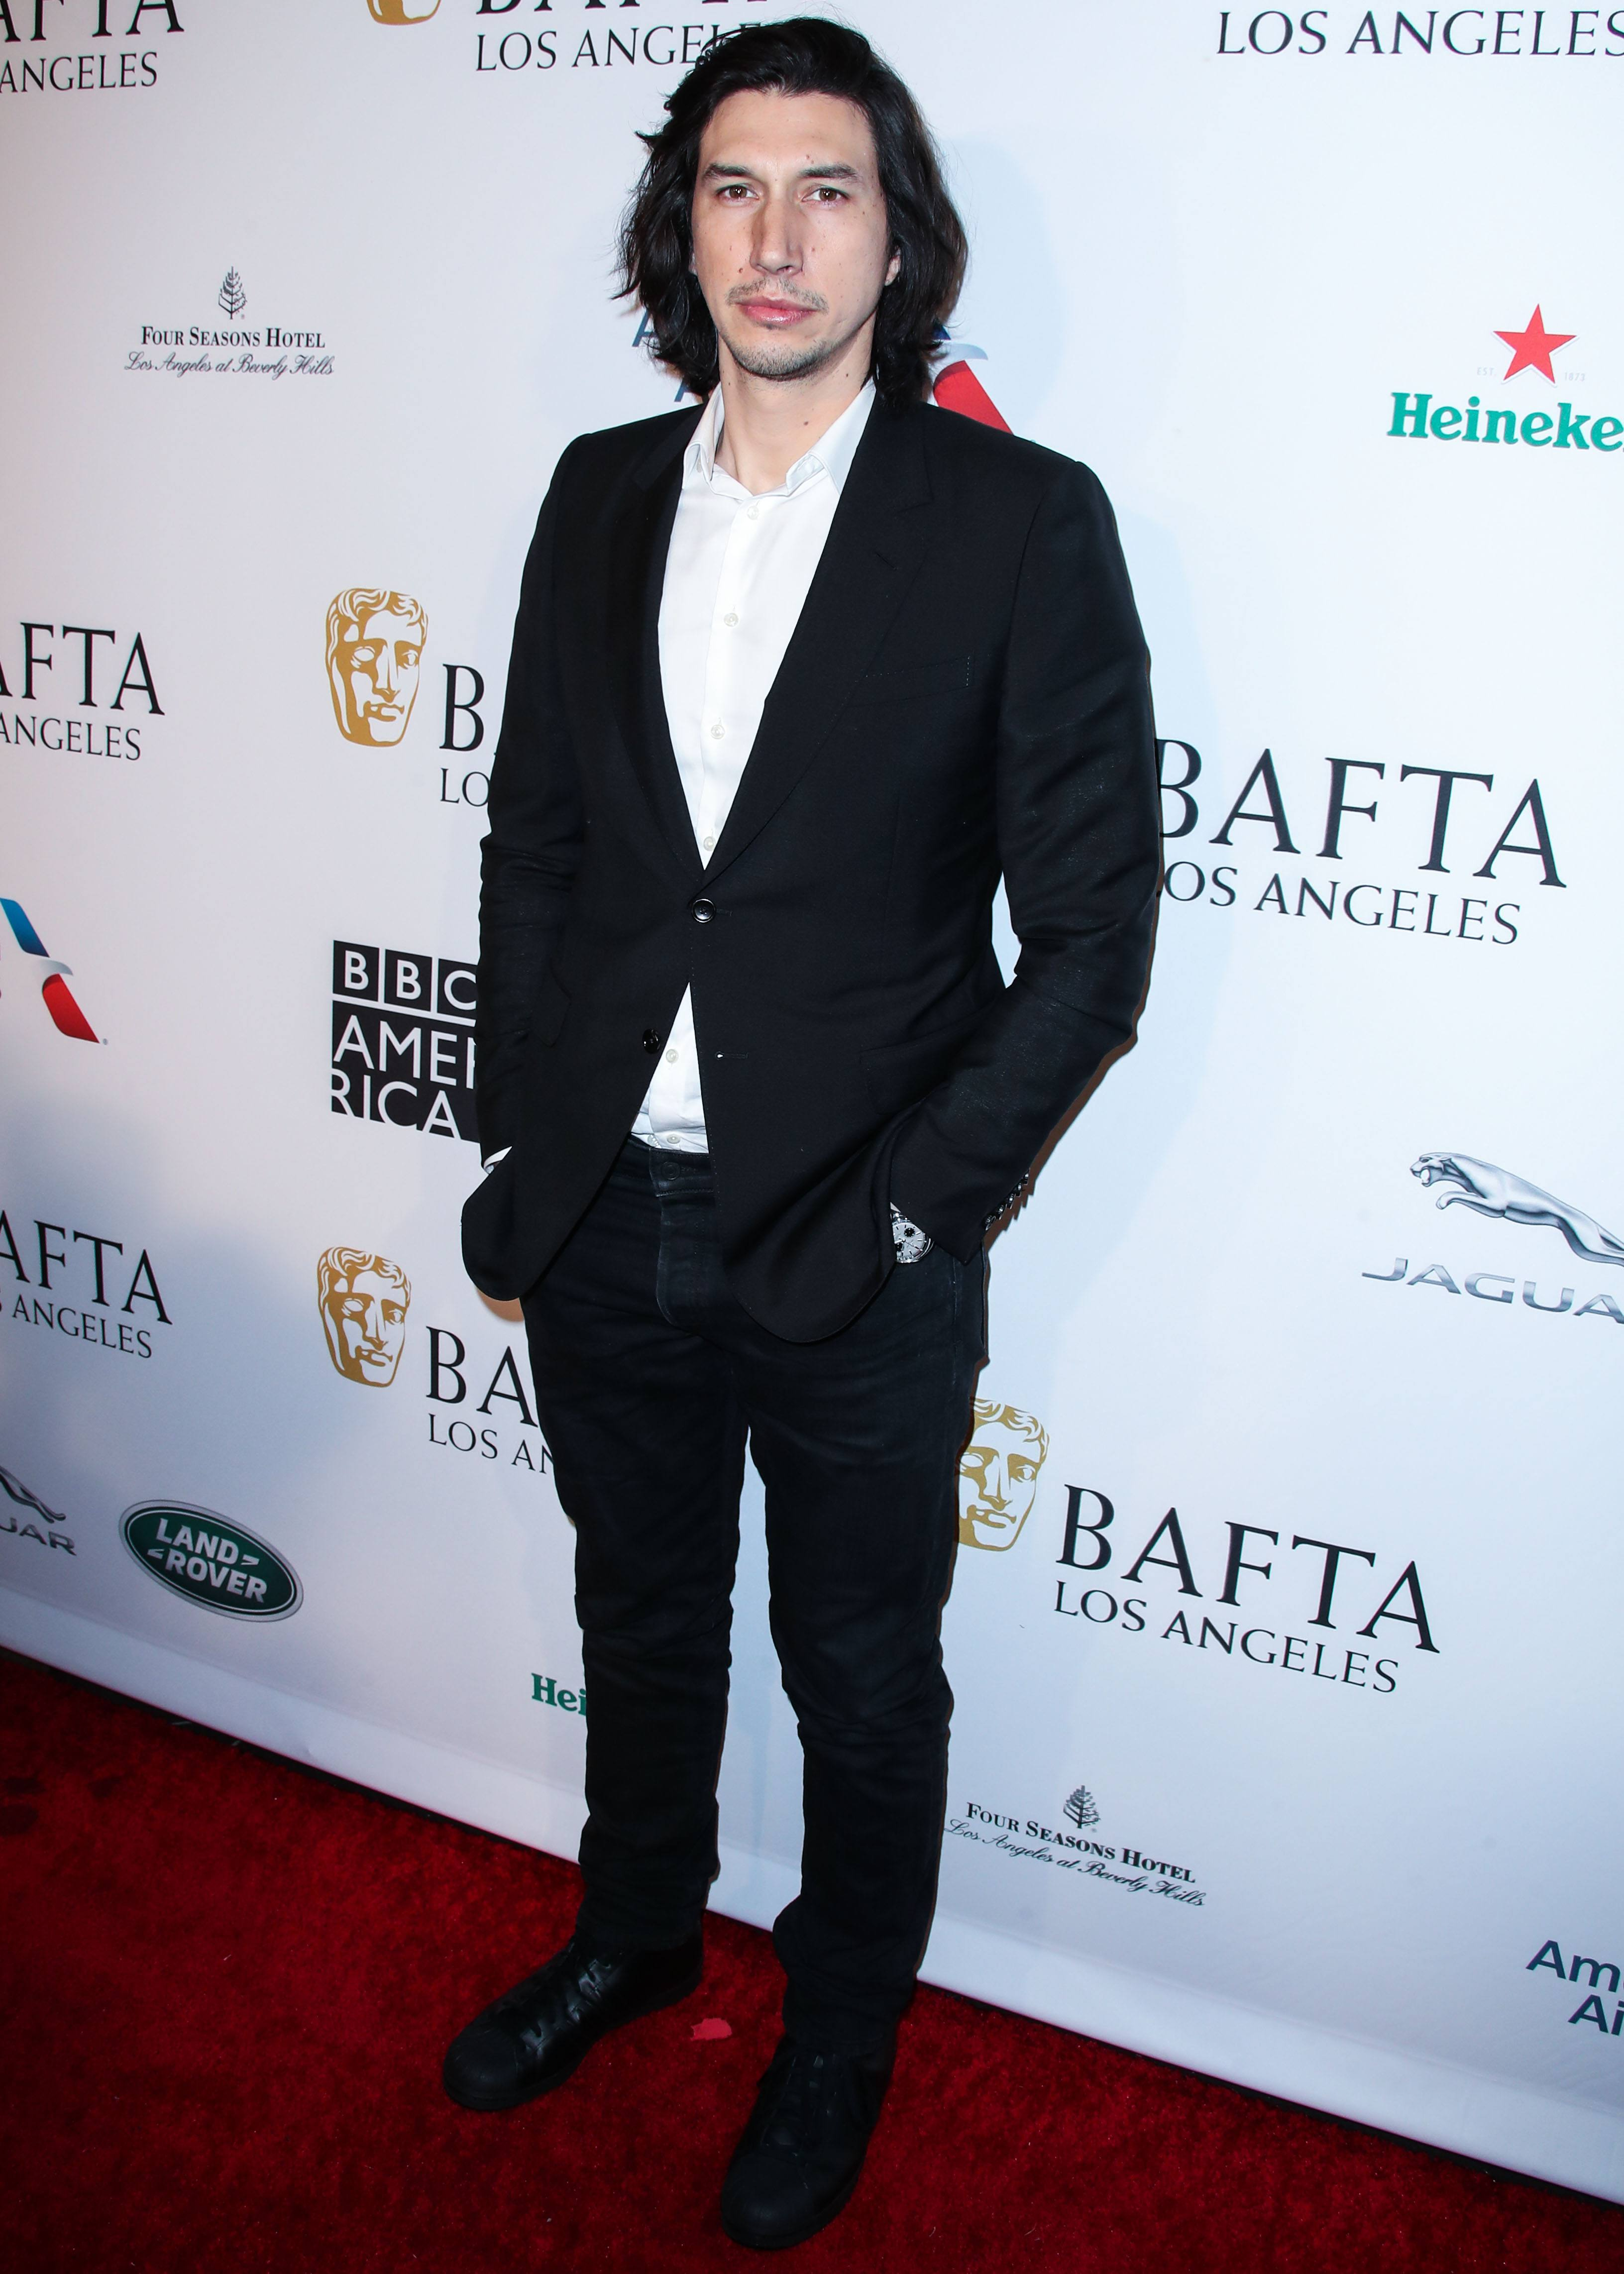 BEVERLY HILLS, LOS ANGELES, CA, USA - JANUARY 05: Actor Adam Driver Arrives At The BAFTA (British Academy Of Film And Television Arts) Los Angeles Tea Party 2019 Held At The Four Seasons Hotel Los Angeles At Beverly Hills On January 5, 2019 In Beverly Hills, Los Angeles, California, United States. КРЕДИТ